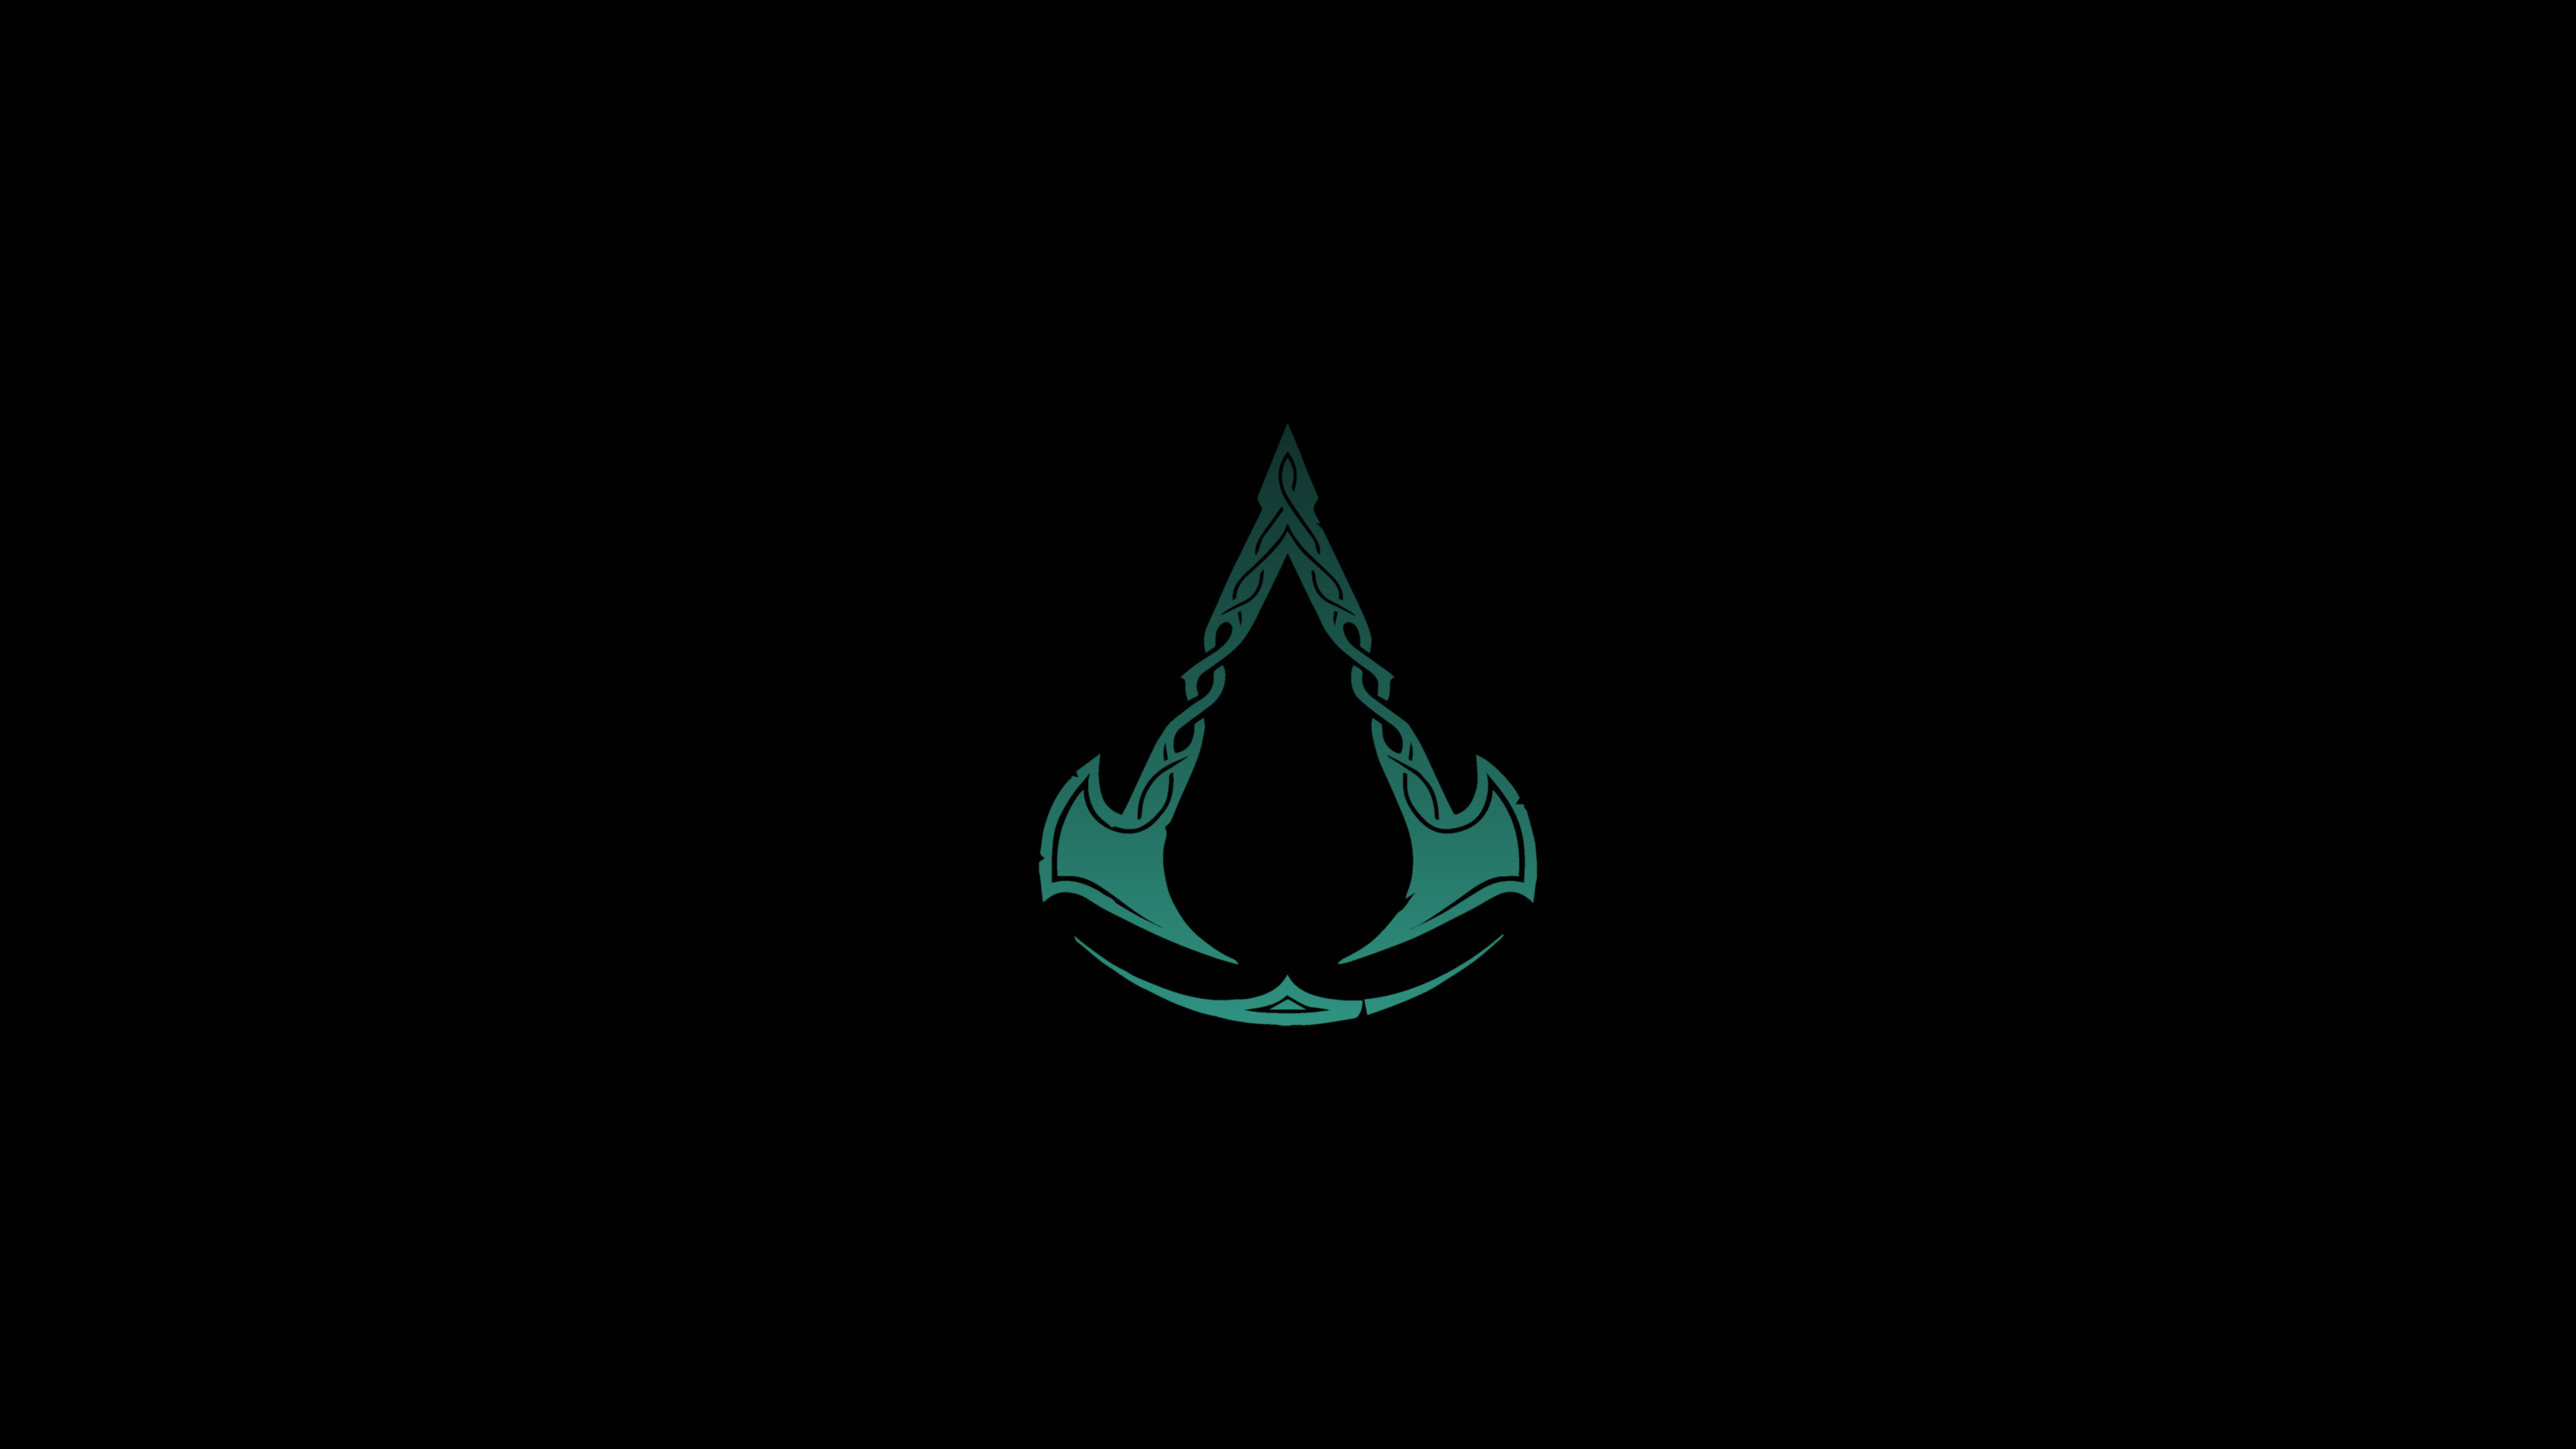 1280x2120 Assassins Creed Valhalla Logo Iphone 6 Hd 4k Wallpapers Images Backgrounds Photos And Pictures